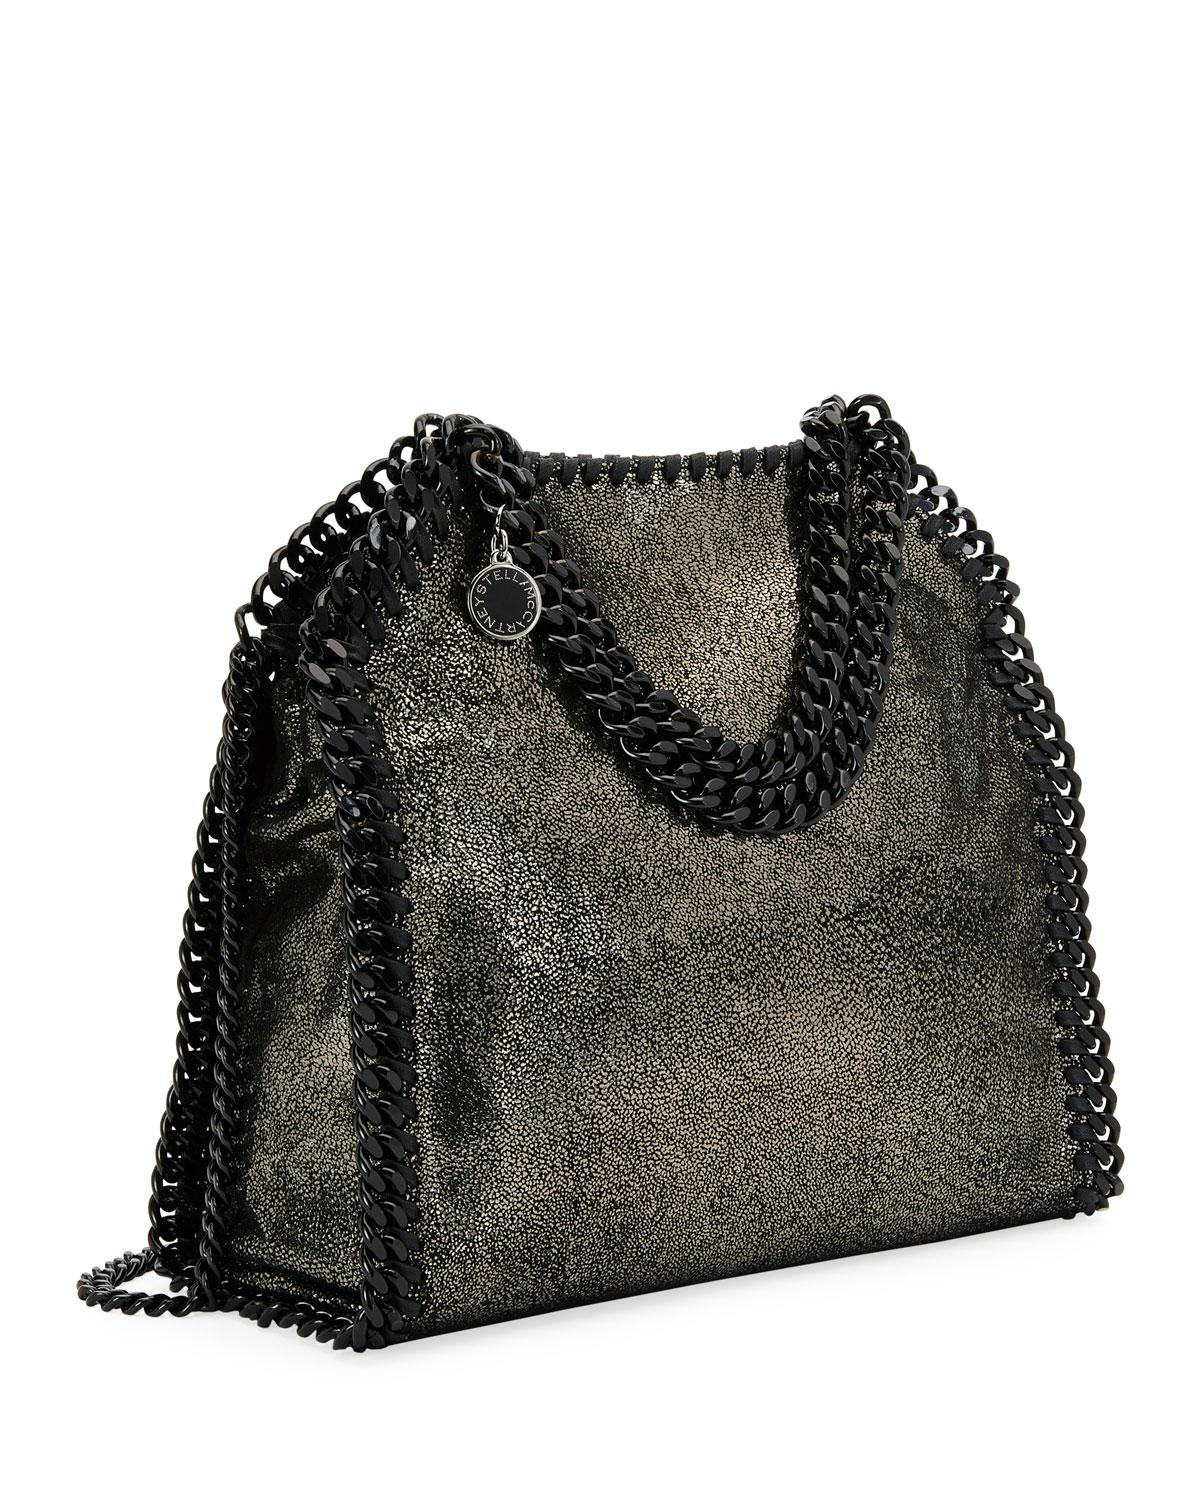 1bb857c2ad Lyst - Stella McCartney Falabella Tiny Metallic Dot Shoulder Bag - Black  Hardware in Gray